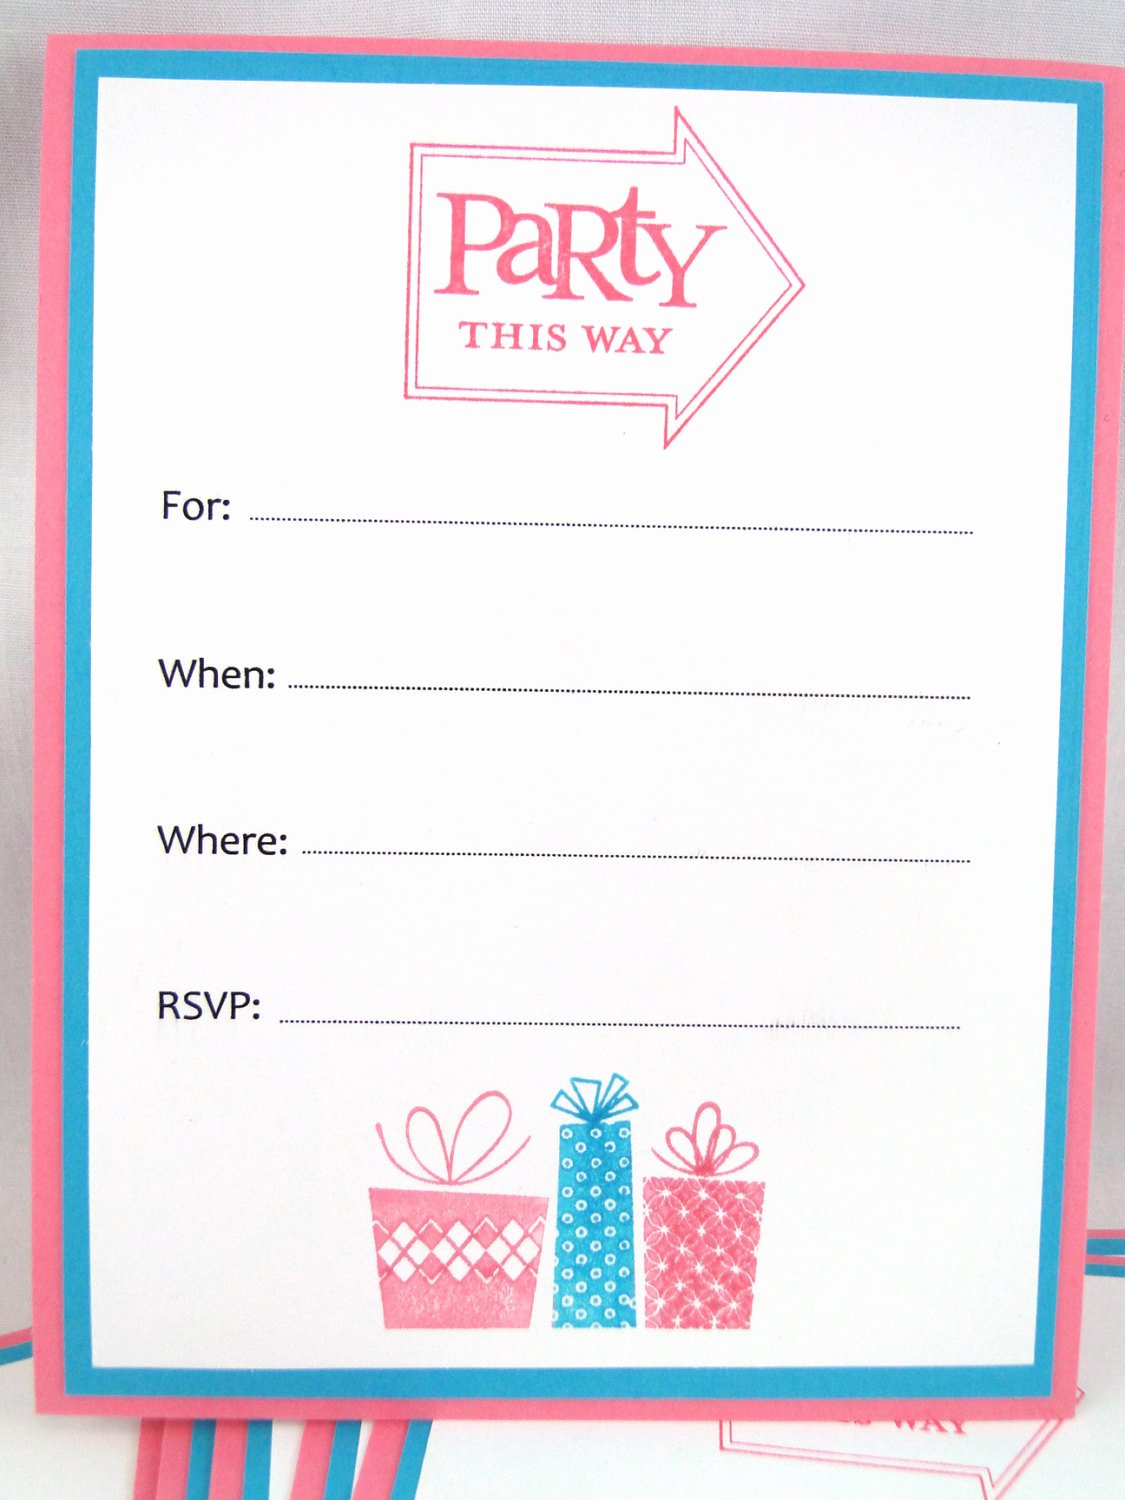 Blank Birthday Party Invitation Template Affordable